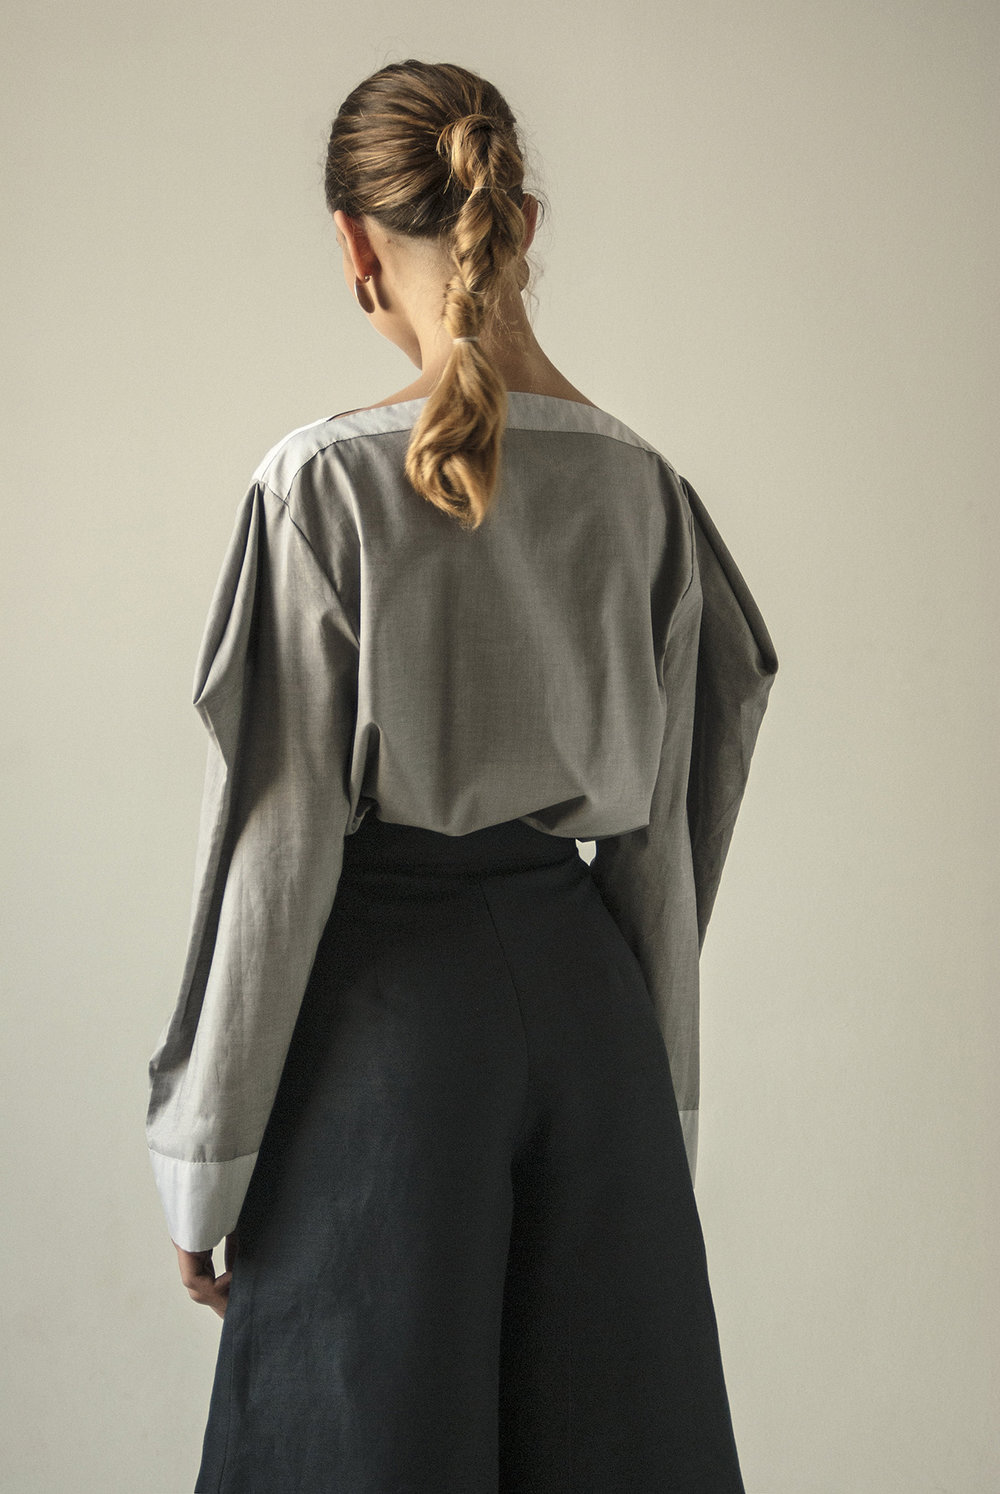 km-by-lange-gray-blouse-back.jpg